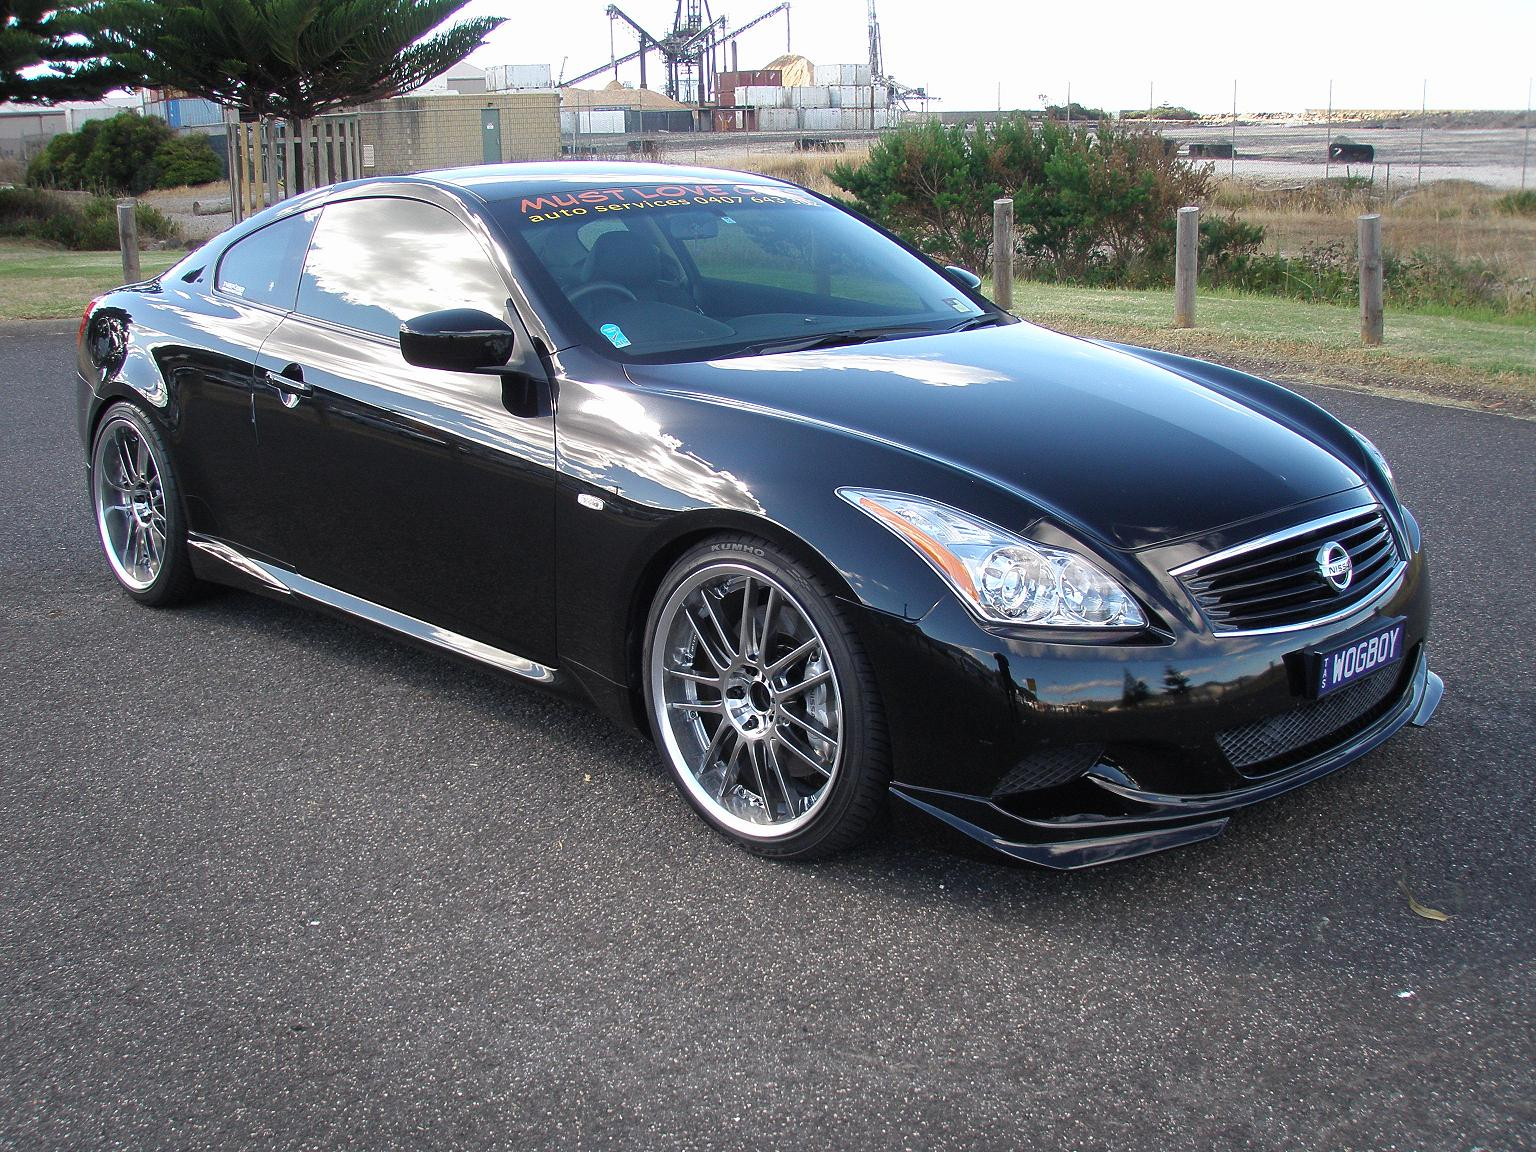 infiniti g37 custom wheels rays gt30 20x9 5 et 35 tire. Black Bedroom Furniture Sets. Home Design Ideas